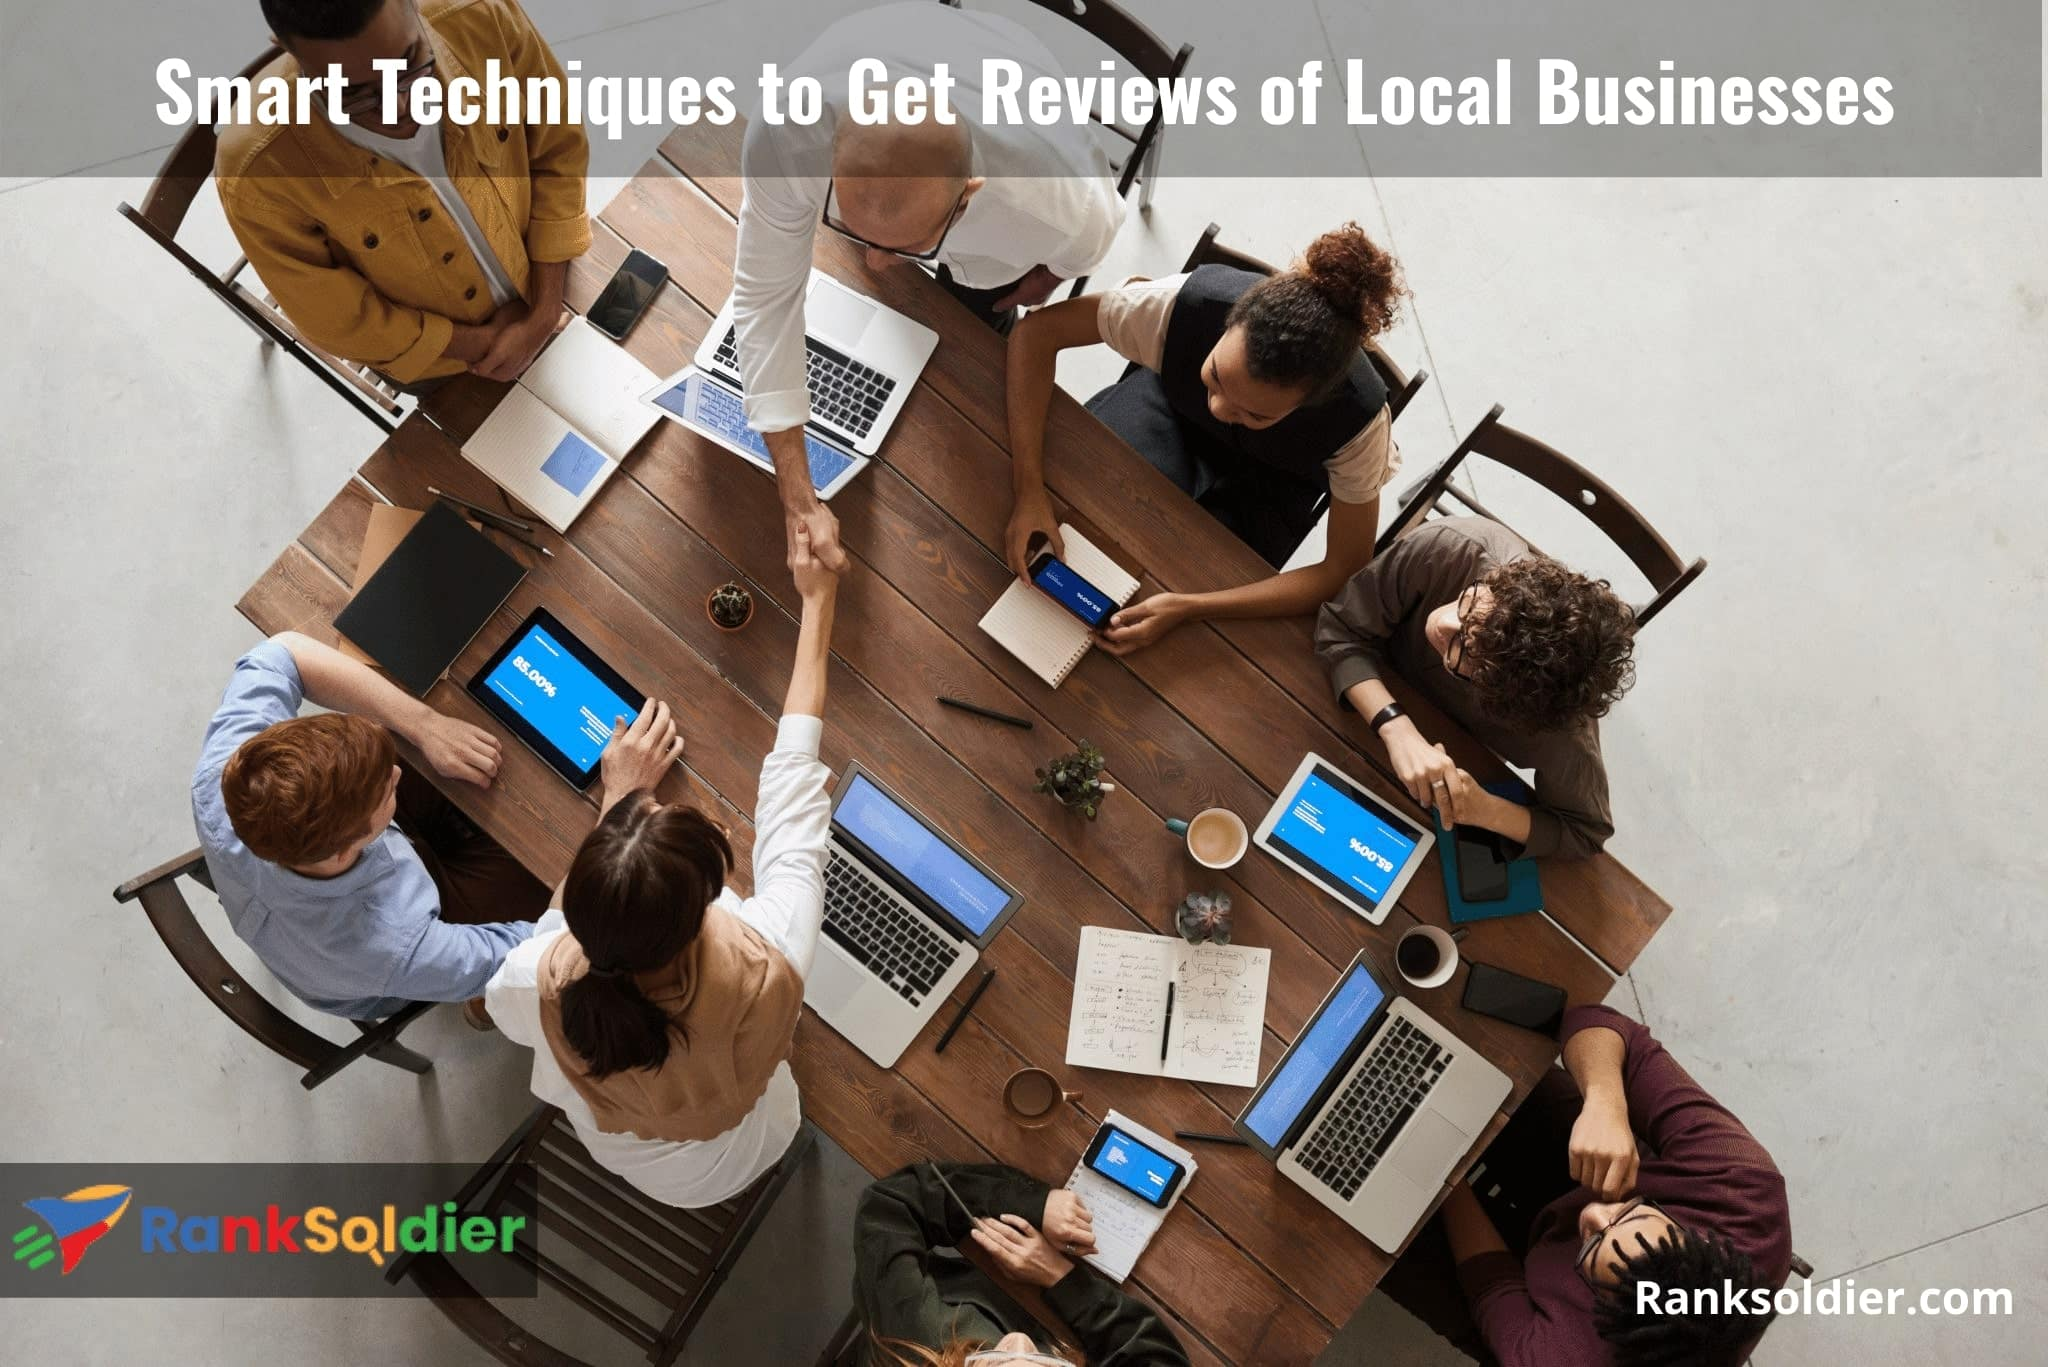 Smart Techniques to Get Reviews of Local Businesses